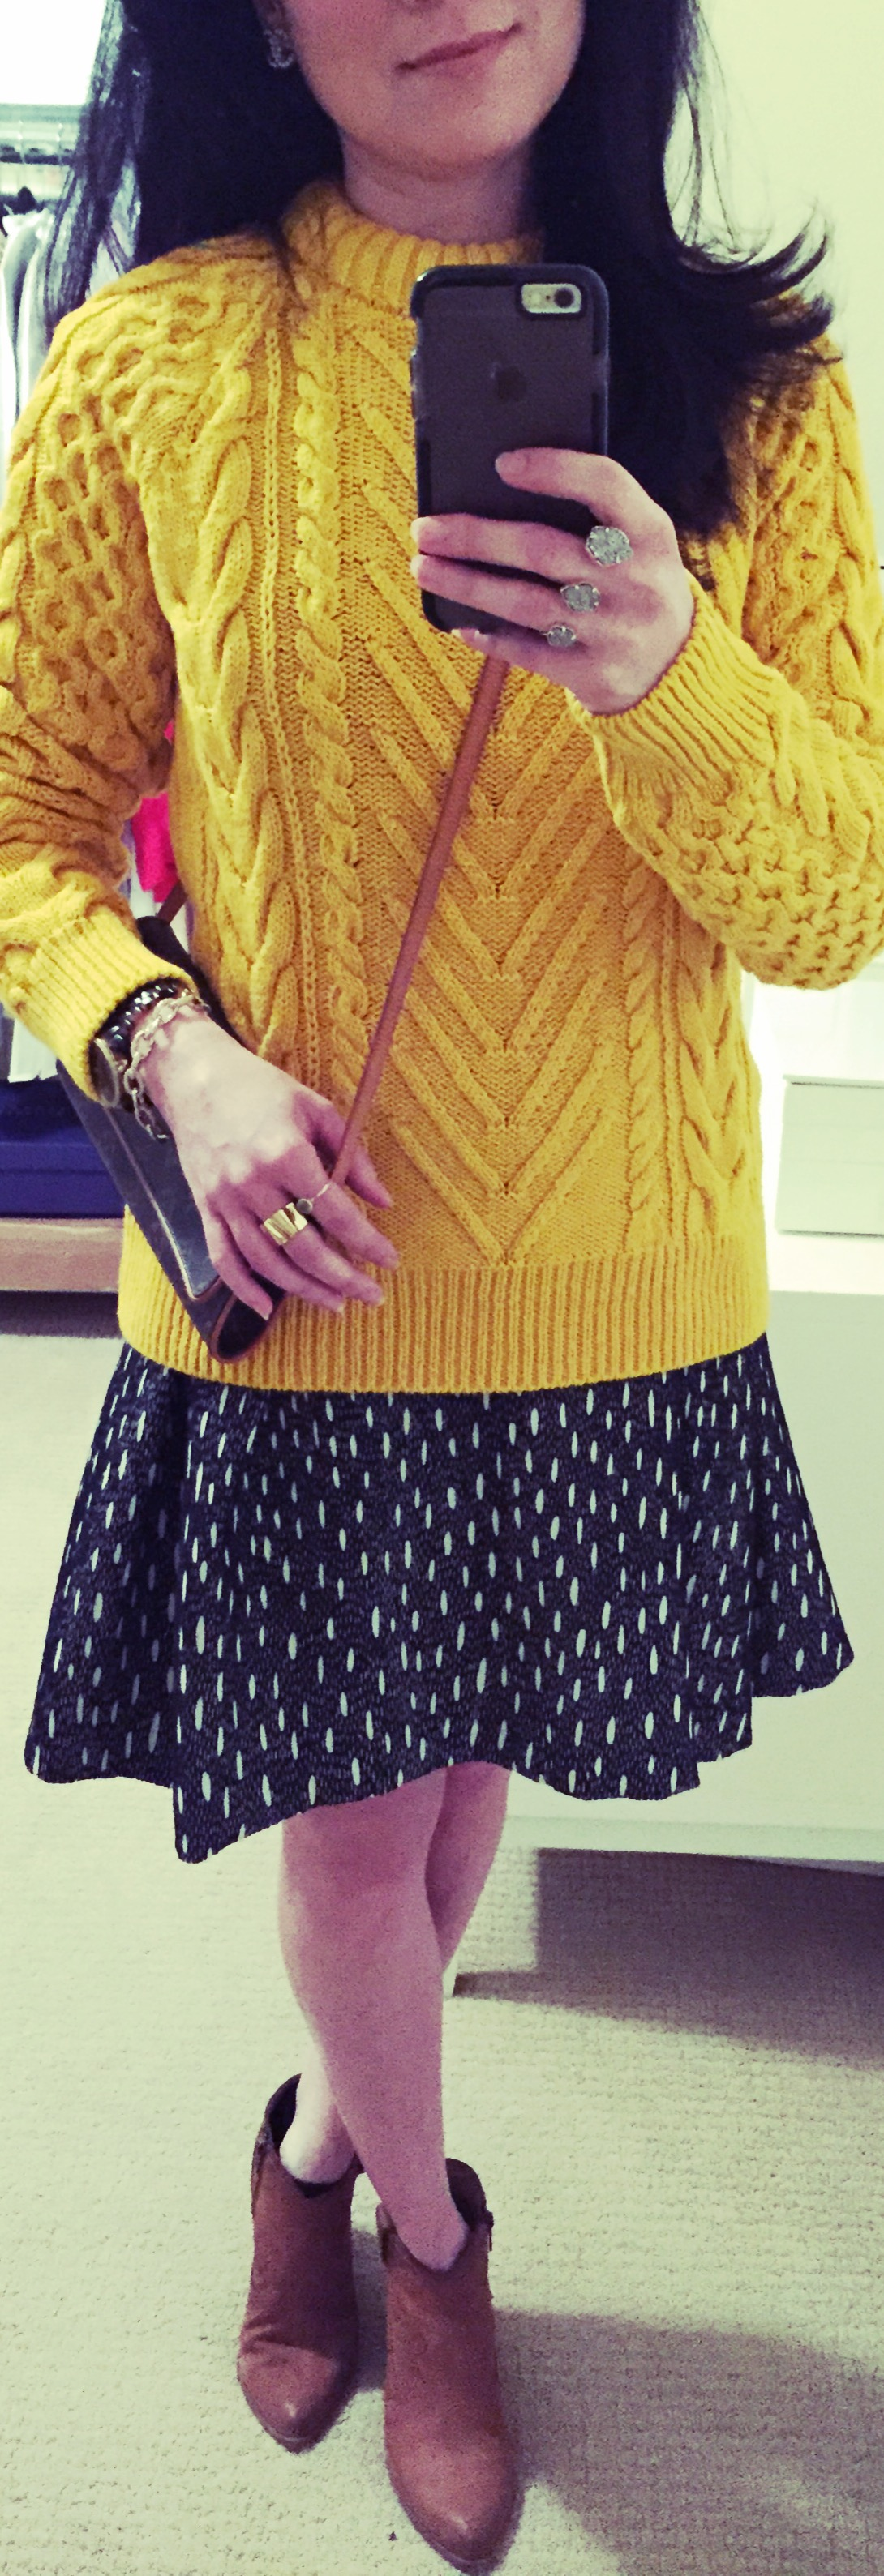 Jan 9, Cable Knit Sweater over Dress by Zara